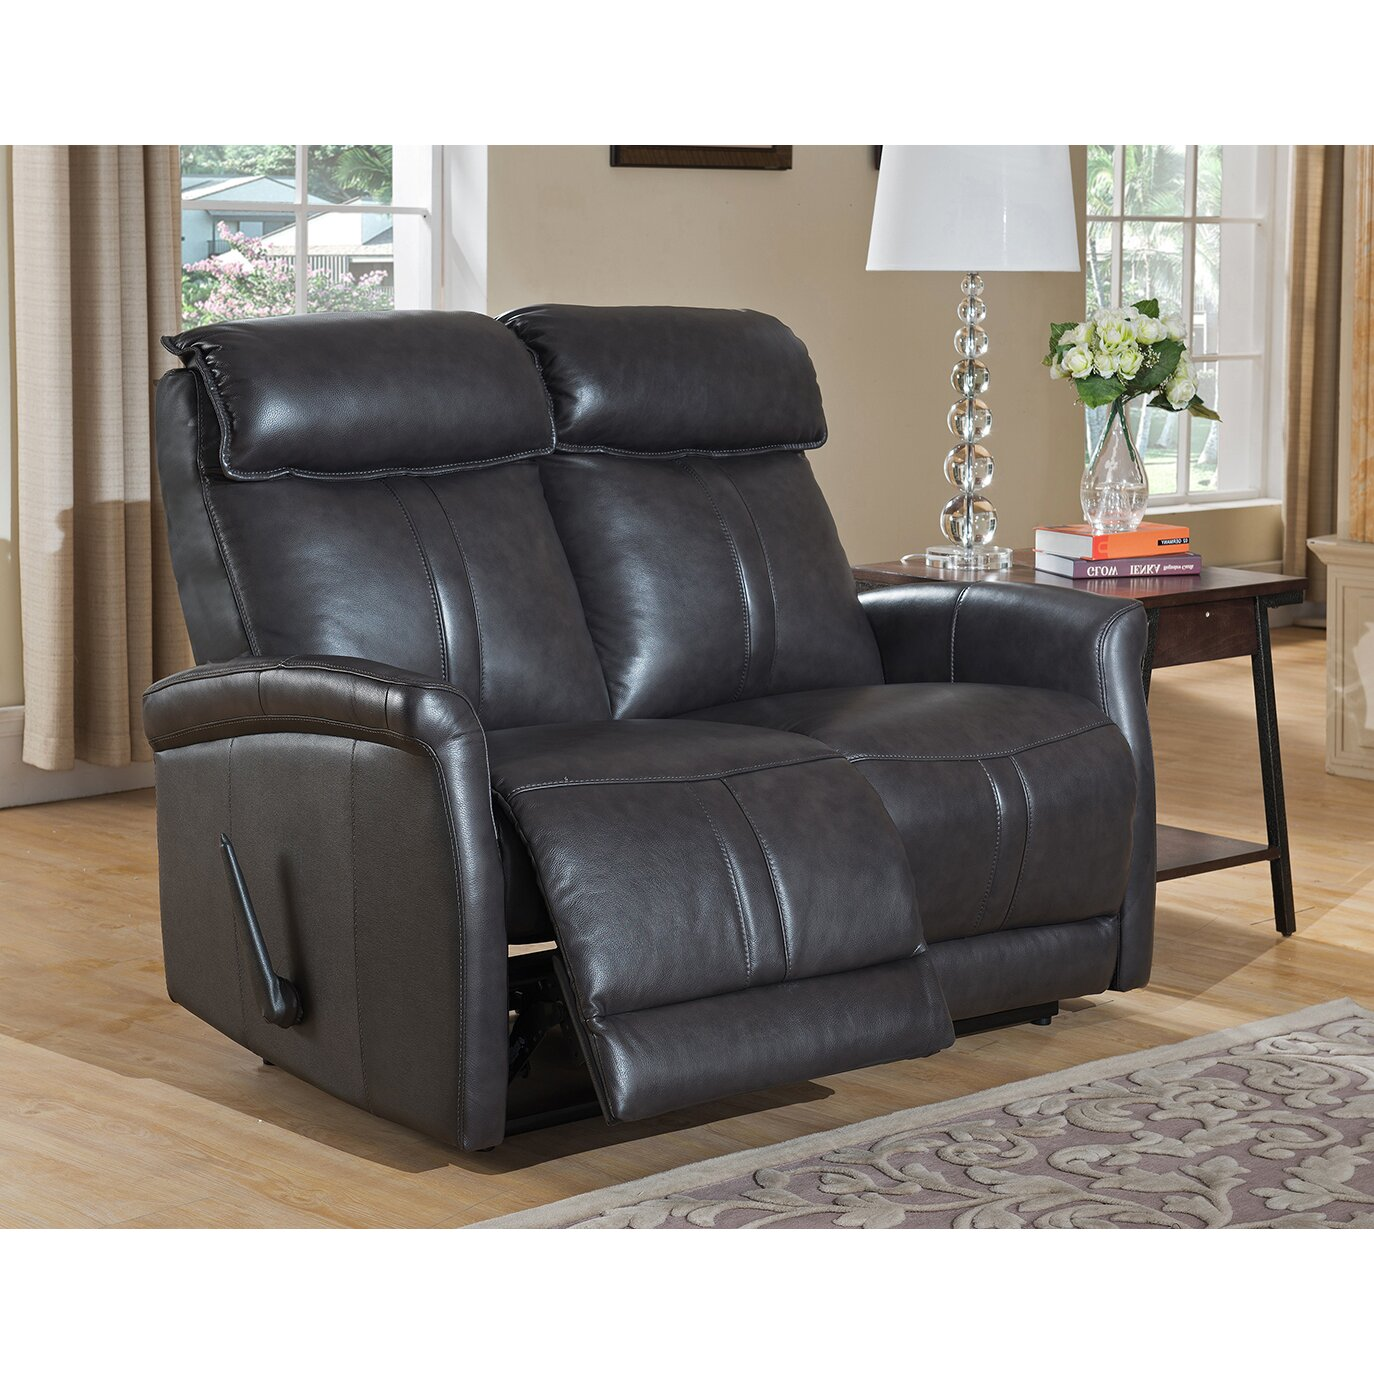 luxury photograph of leather sofa and loveseat sets